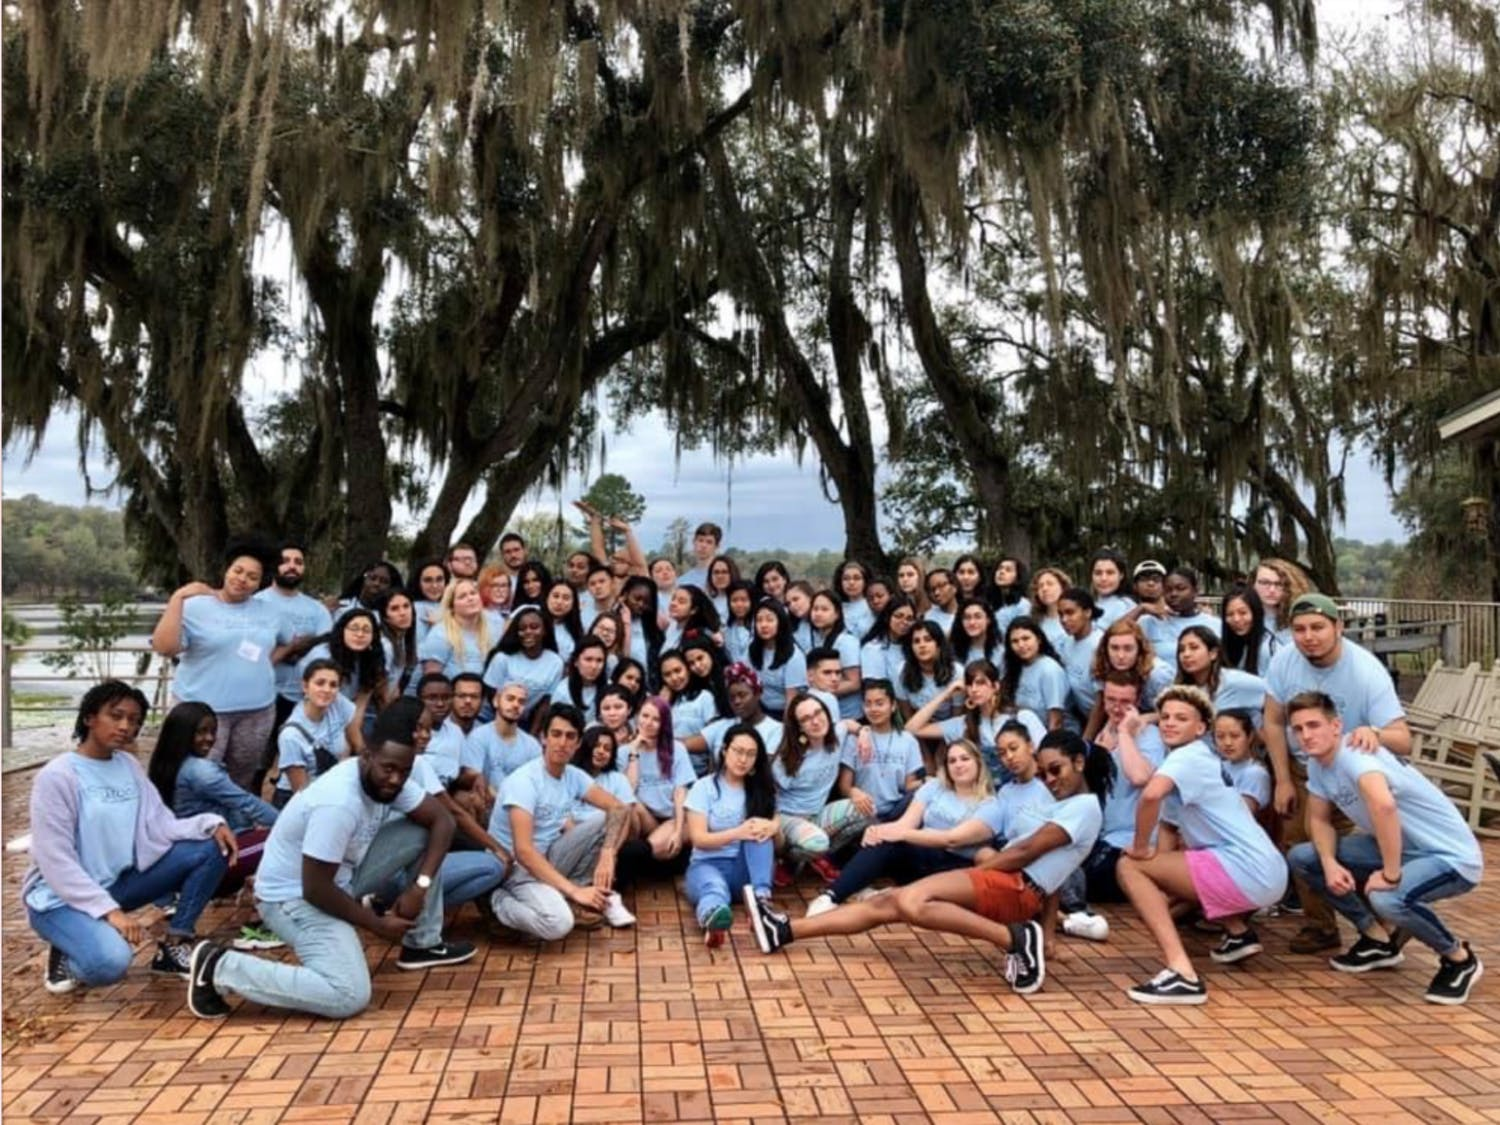 Emma Sanchez, a 19-year-old UF international studies sophomore, attended the fourth weekend of Gatorship in Spring 2019.